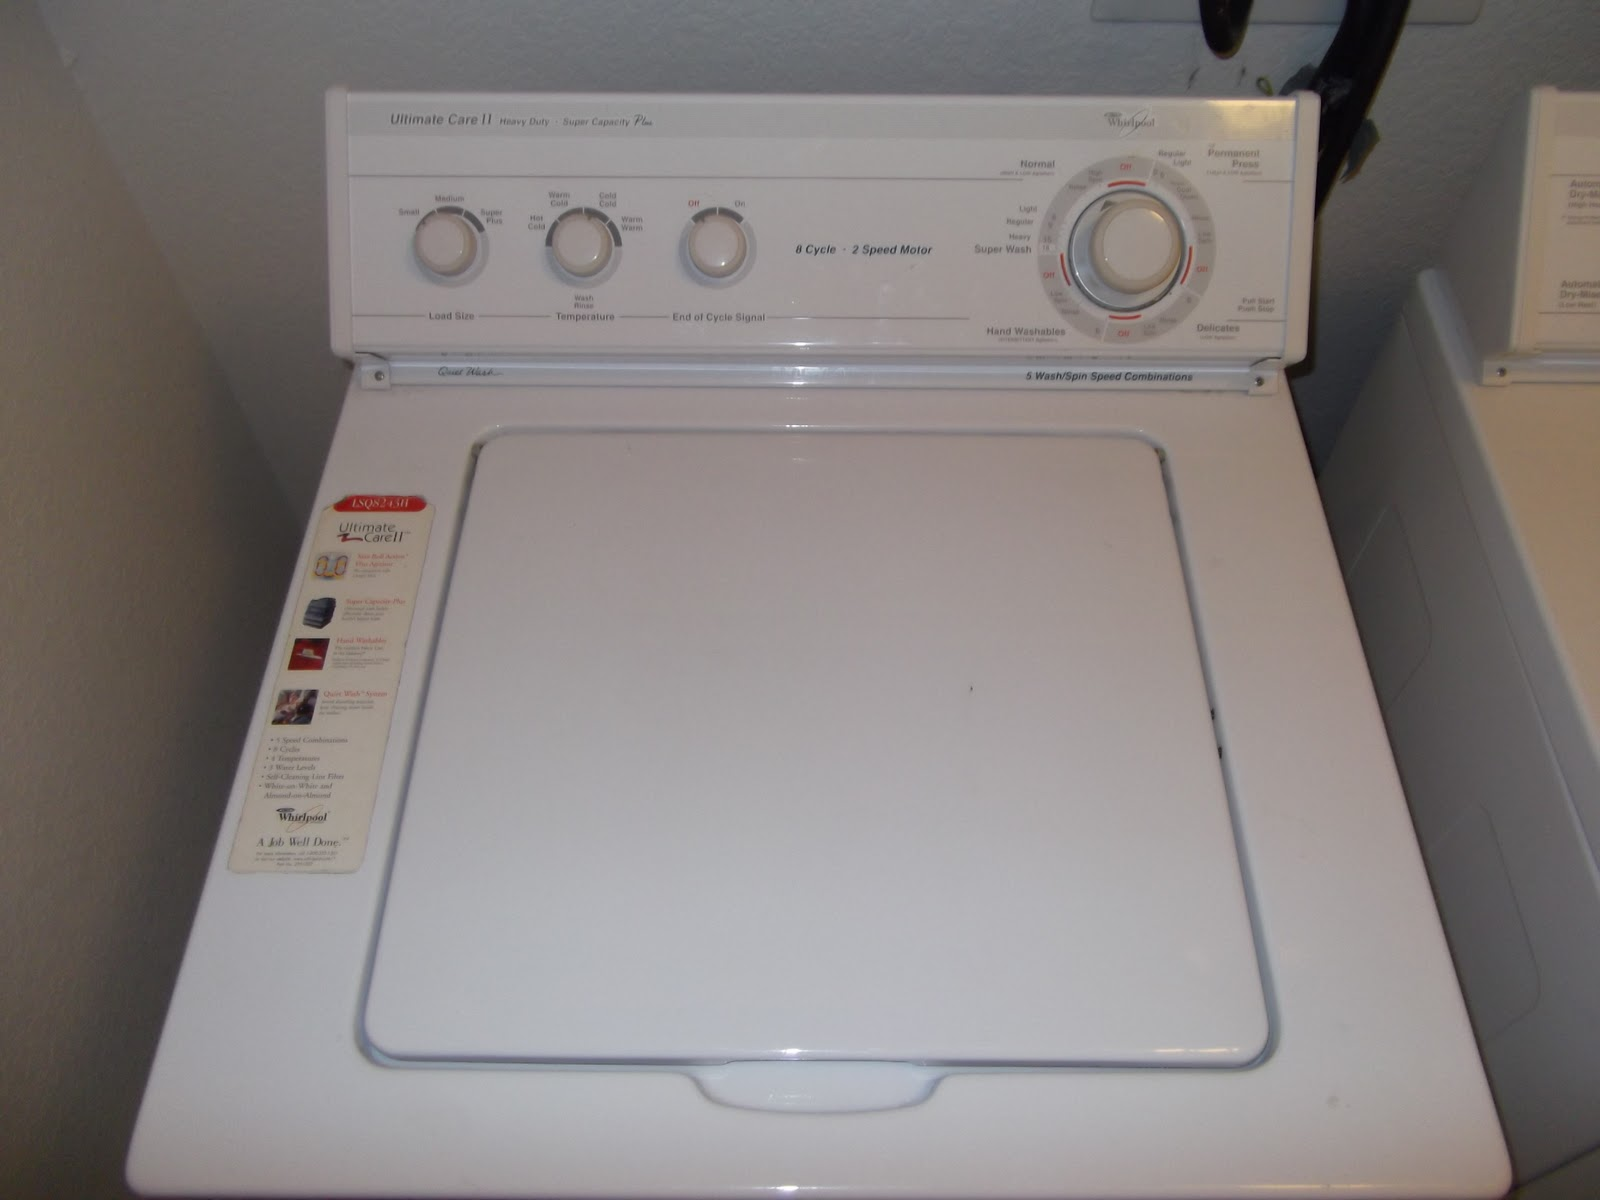 Washer Not Draining Or Spinning Omids Diy Web Log Whirlpool Washer Ultimate Care Ii Lsq8243h